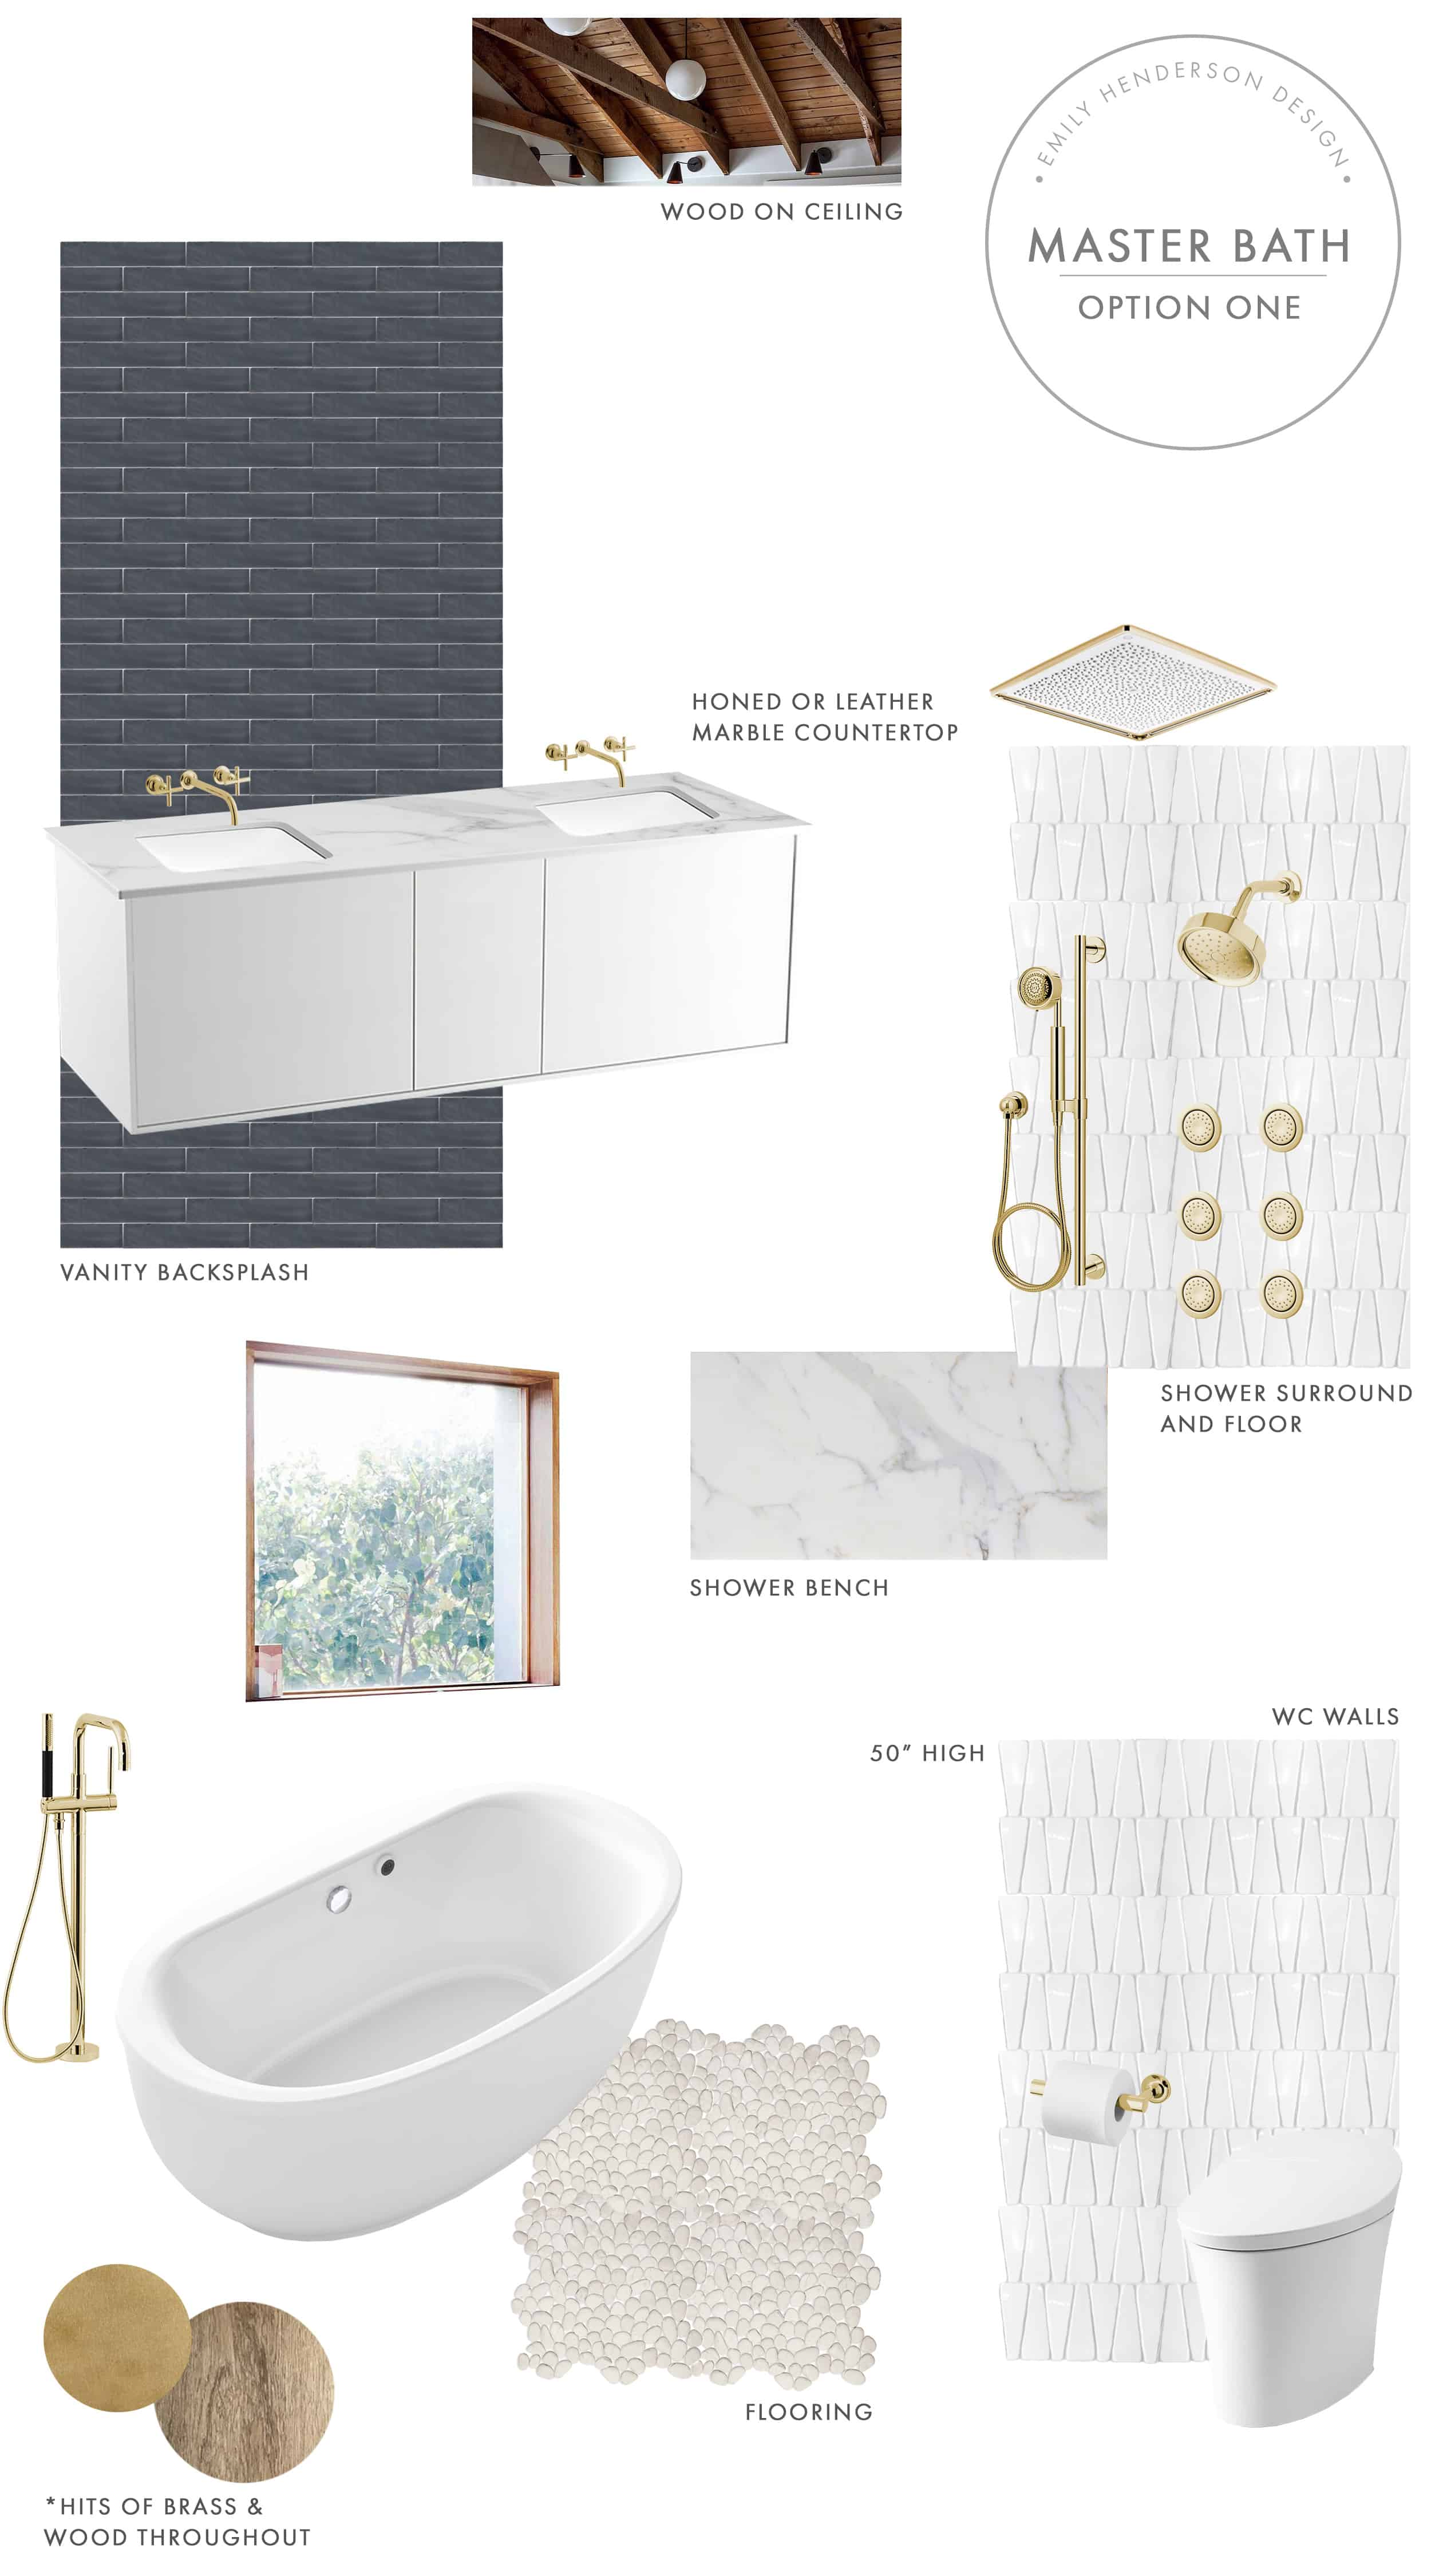 Emily Henderson Mountain Fixer Upper I Design You Decide Master Bath Final Option One For Blog Final1